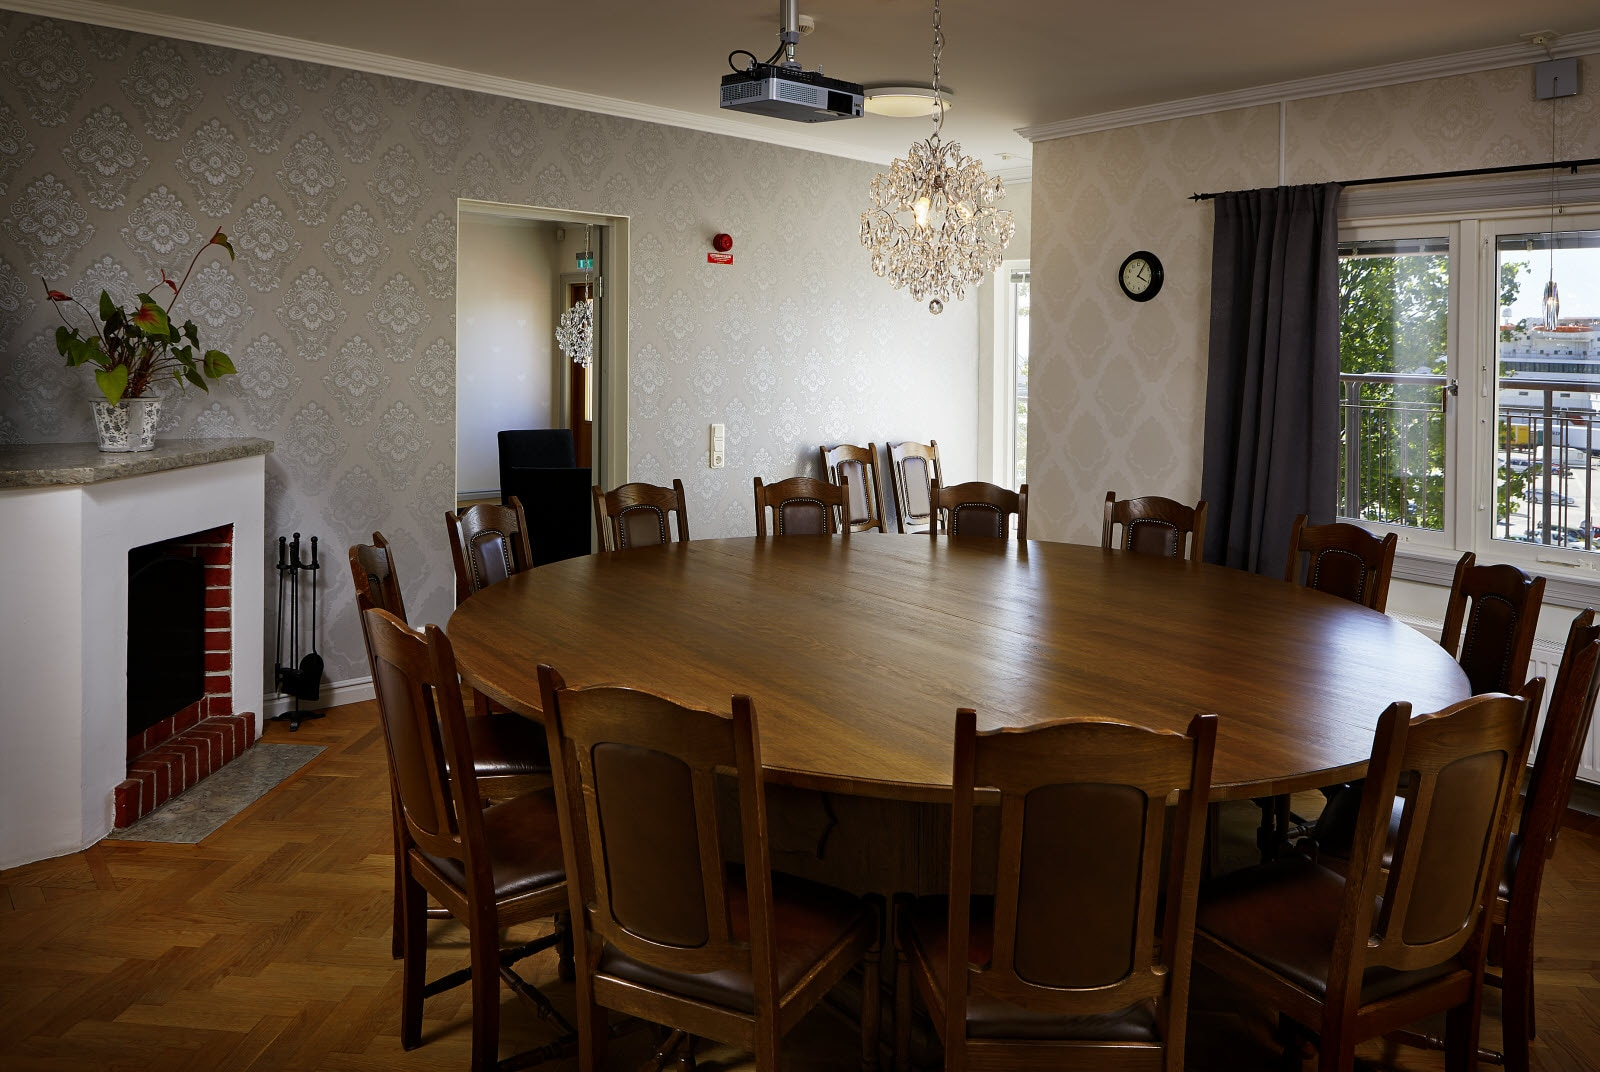 Scandic Visby, board room, meeting, conference